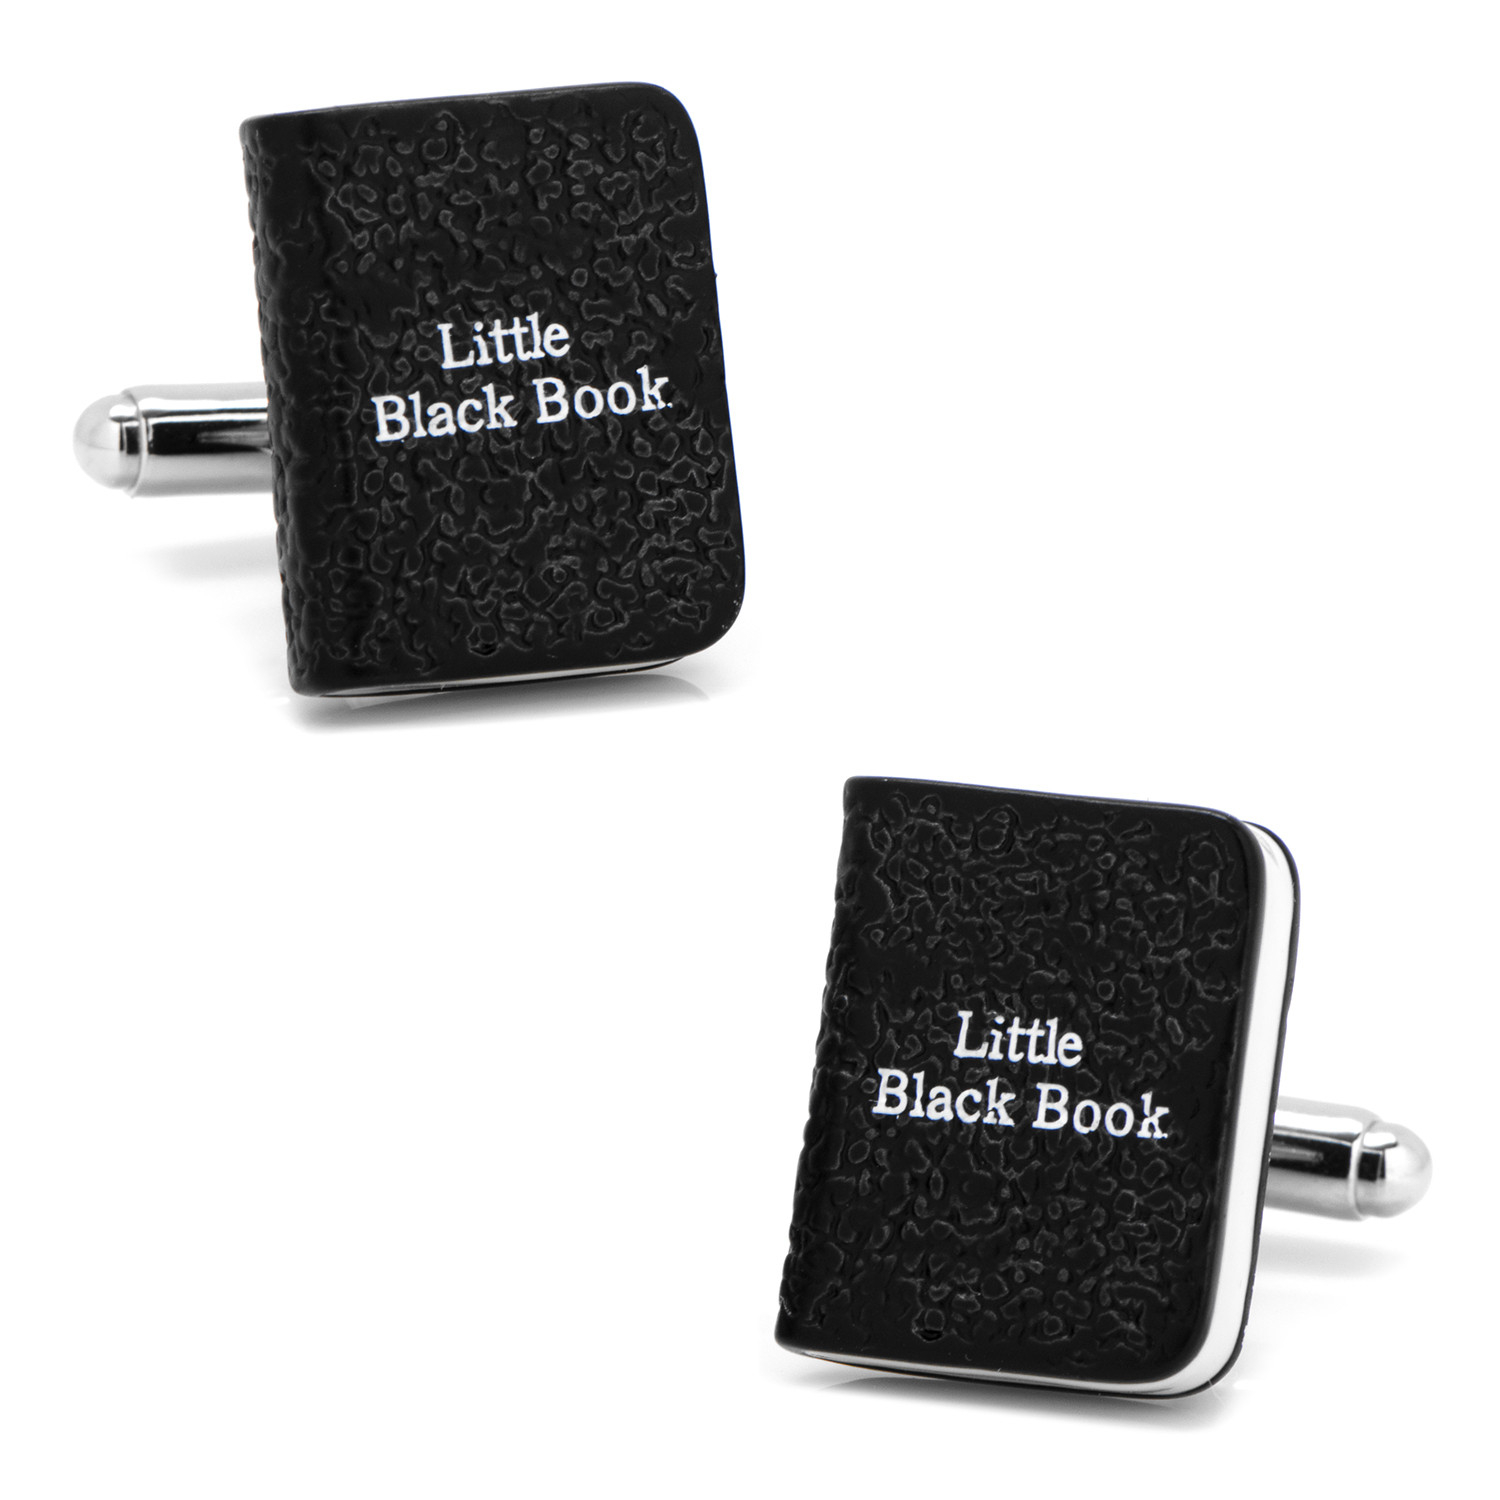 Little Black Book Cufflinks